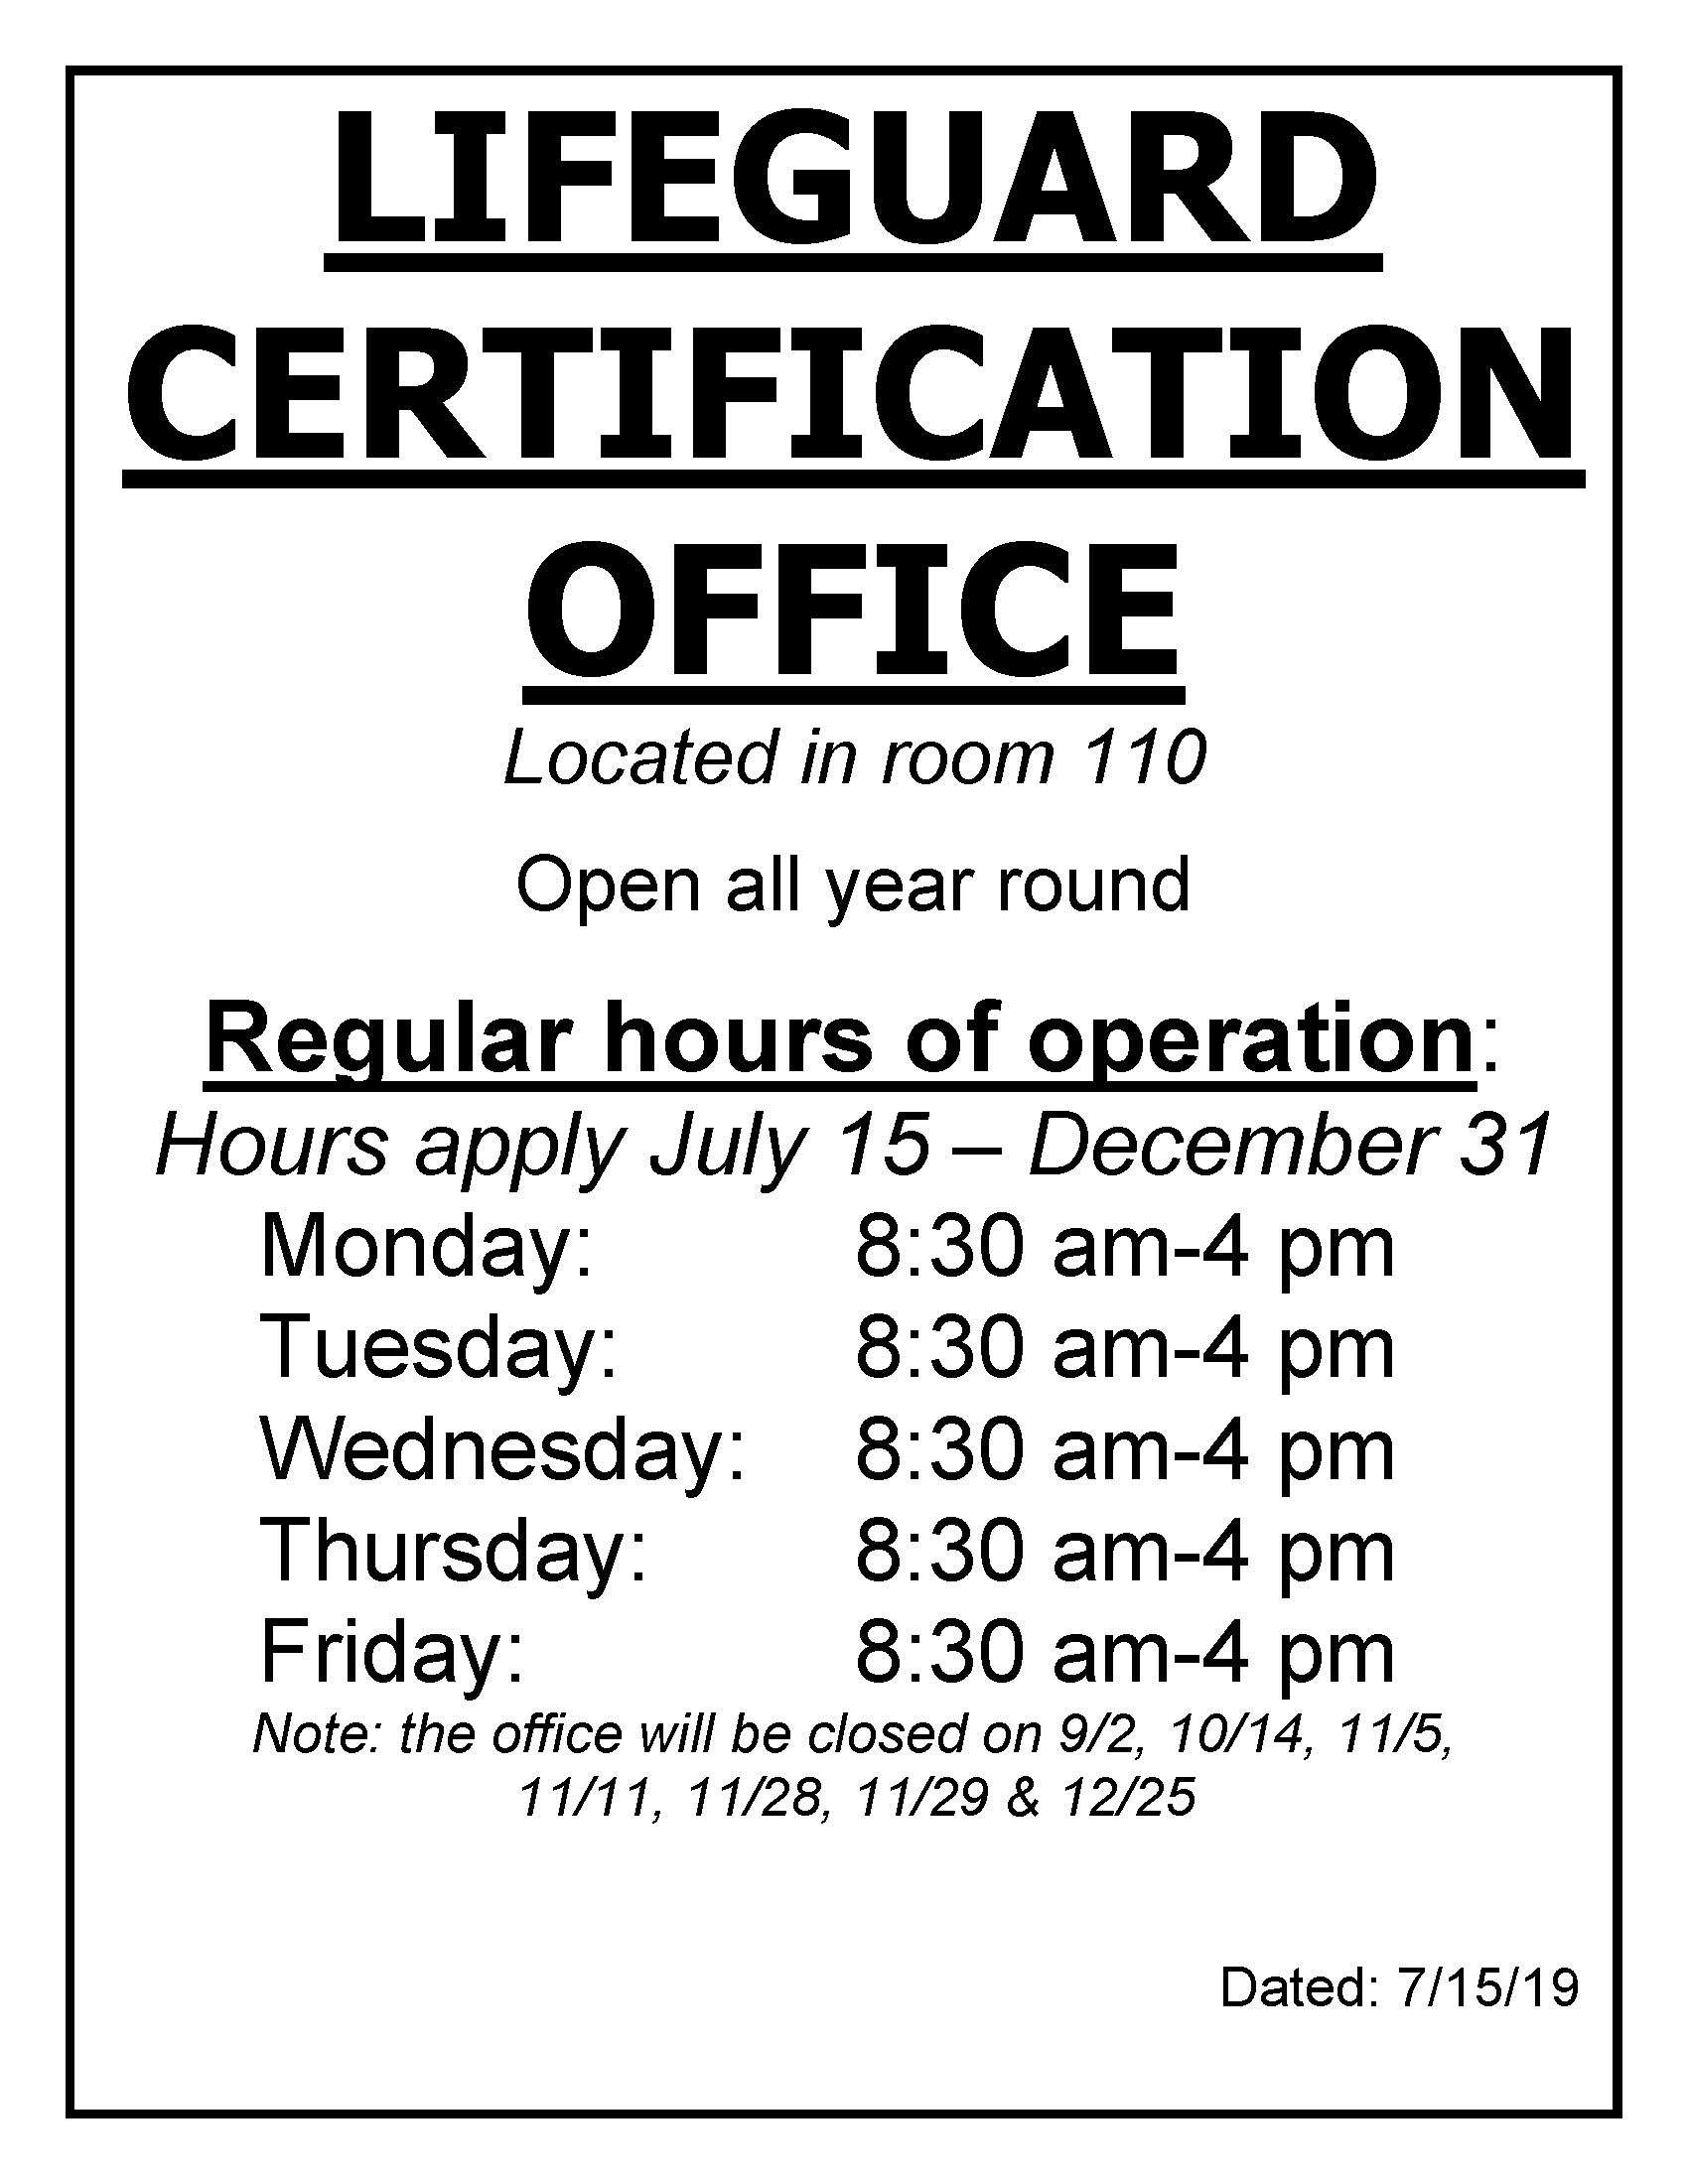 LG cert office hours - 2019 after July 10